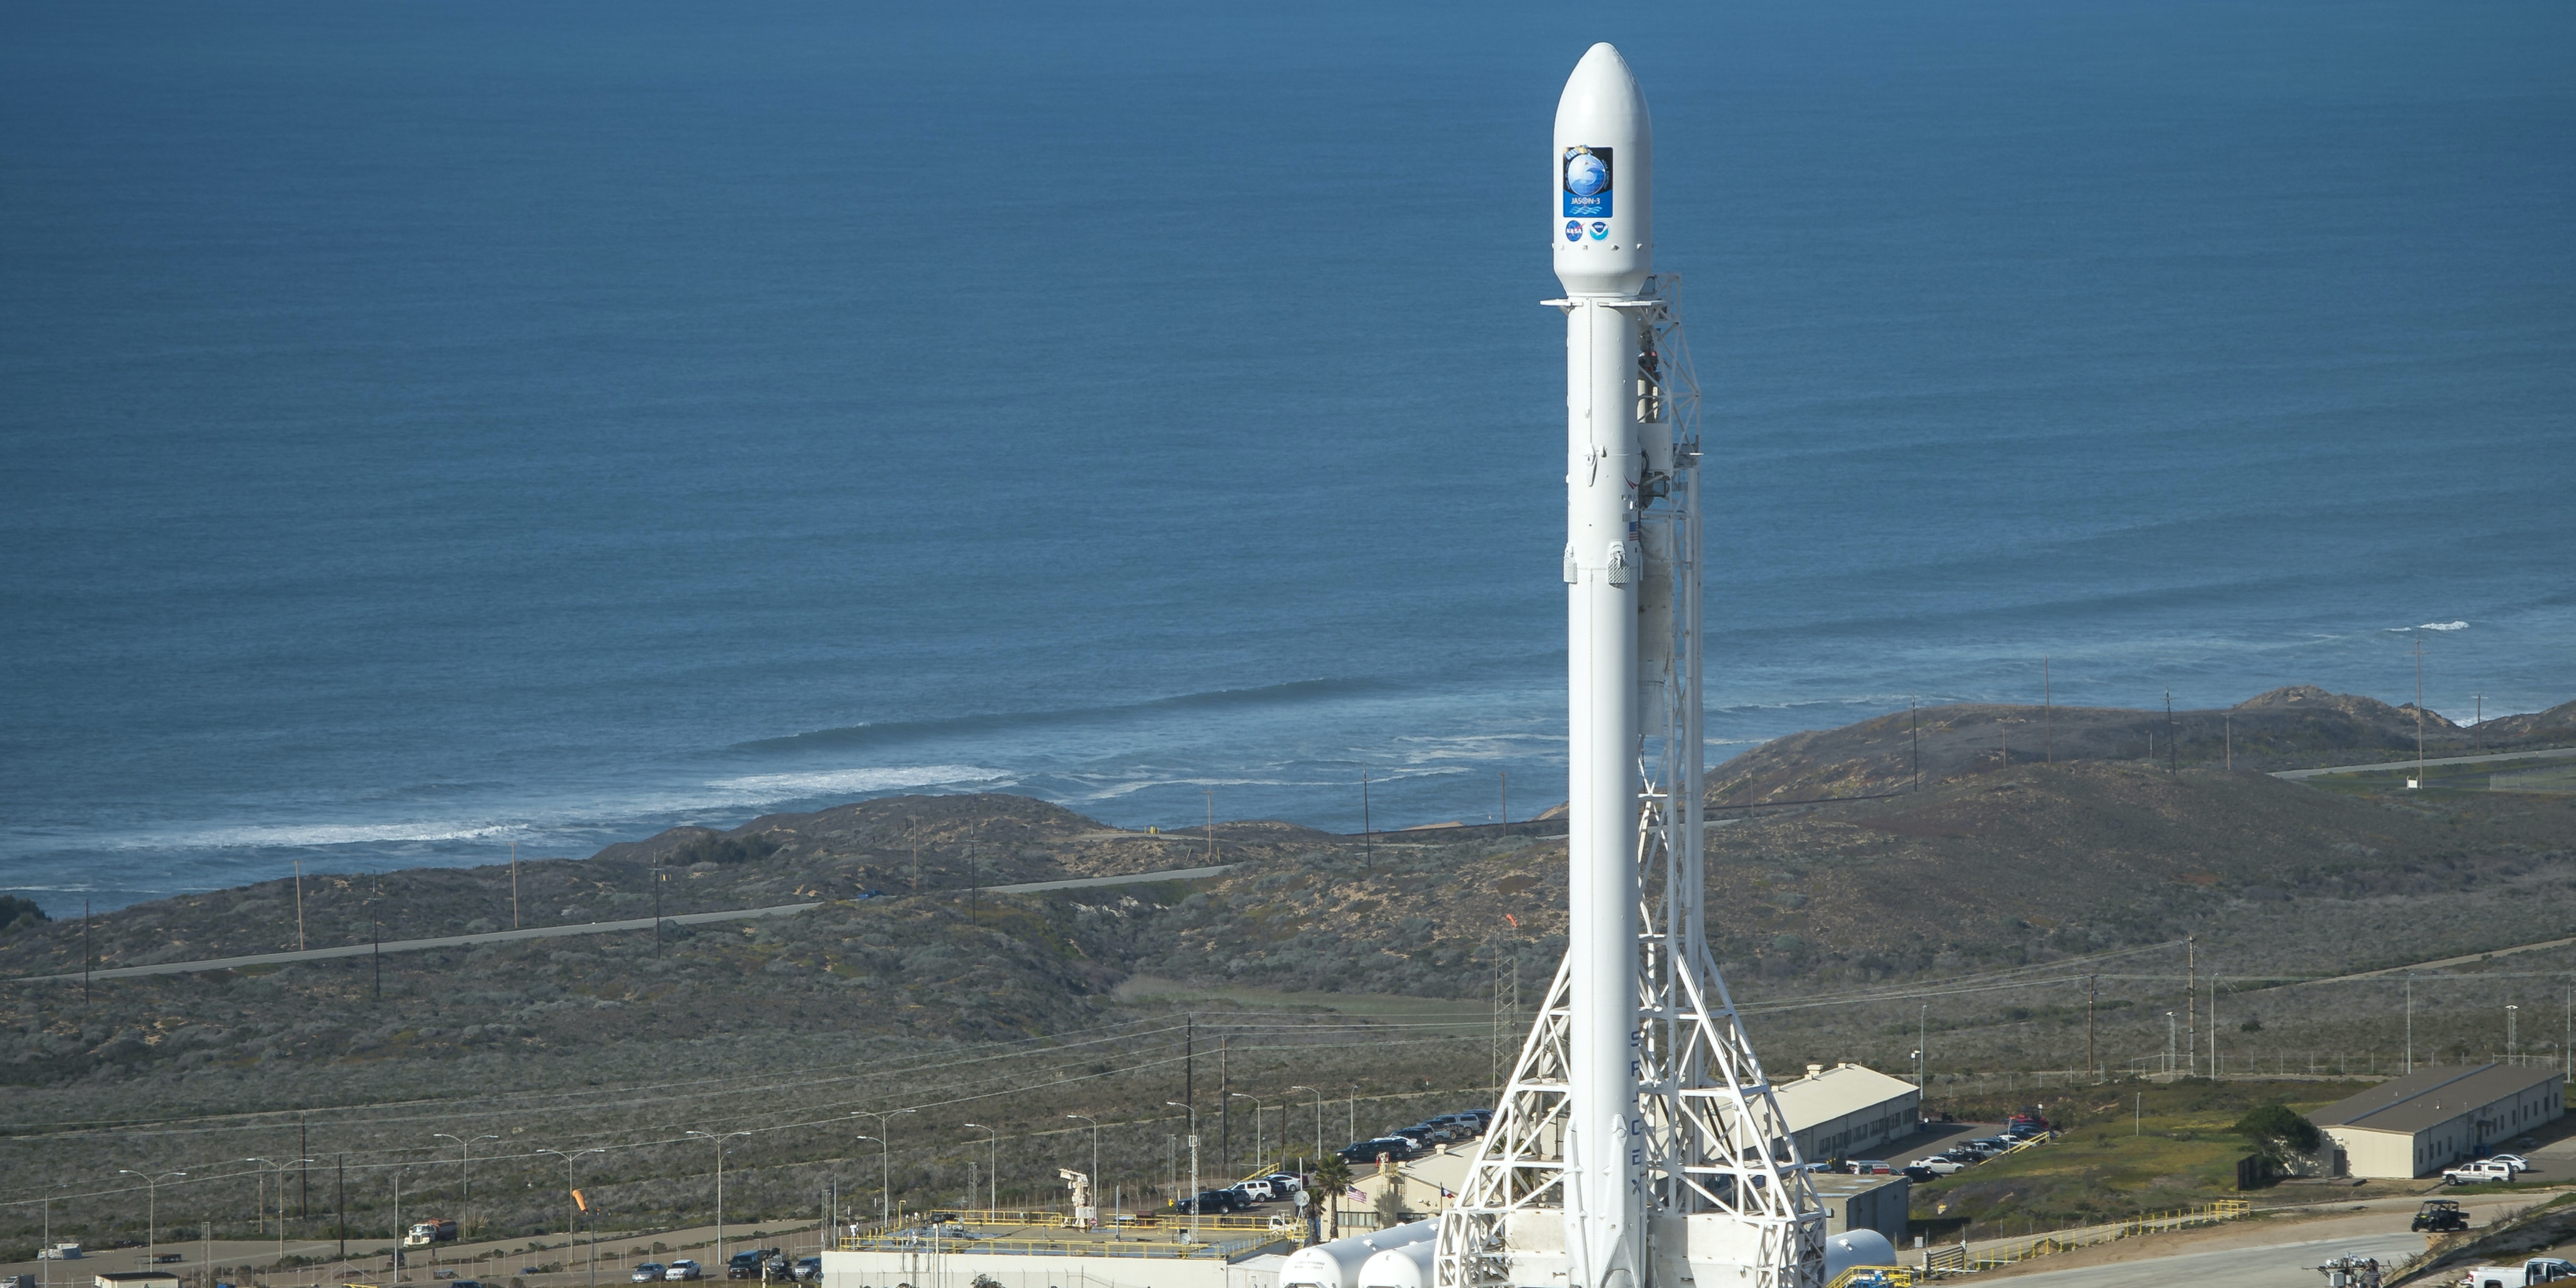 VANDENBERG AFB, CA - JANUARY 16: In this handout provided by the National Aeronautics and Space Administration (NASA), the SpaceX Falcon 9 rocket is seen at Vandenberg Air Force Base Space Launch Complex 4 East with the Jason-3 spacecraft onboard January 16, 2016 in California. Jason-3, an international mission led by the National Oceanic and Atmospheric Administration (NOAA), will help continue U.S.-European satellite measurements of global ocean height changes. (Photo by Bill Ingalls/NASA via Getty Images)